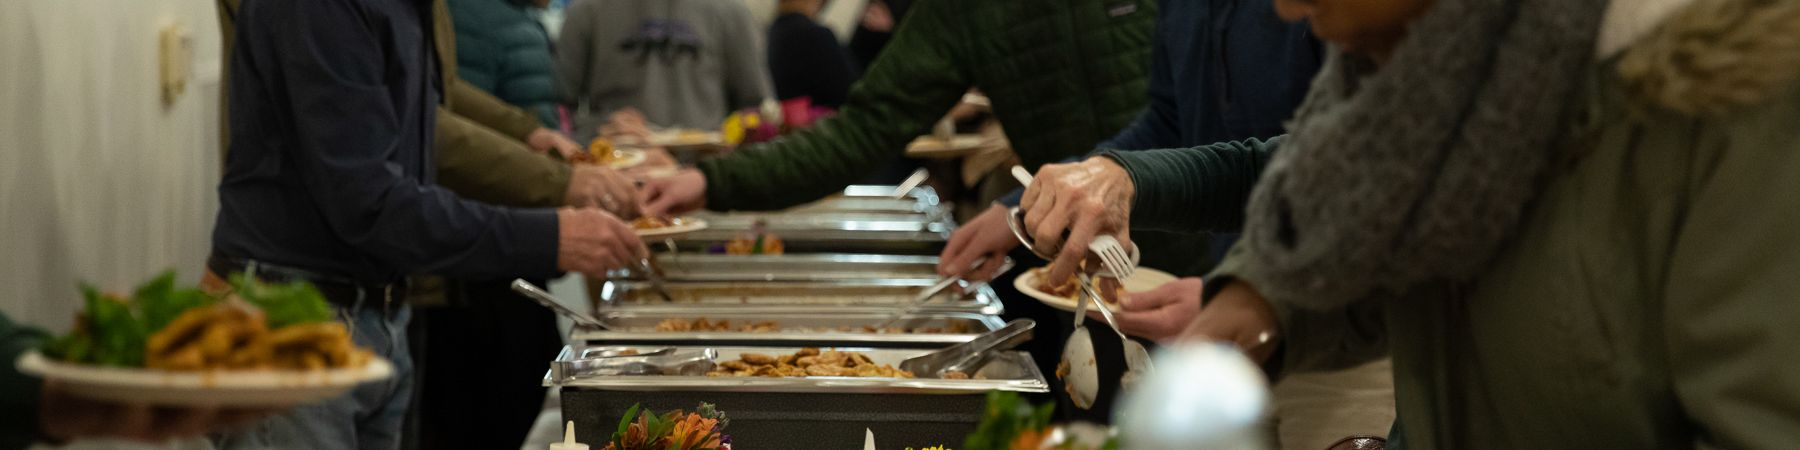 Attendees from the 2019 MLK Community Event, Voices for change, getting food at a vegan buffet station